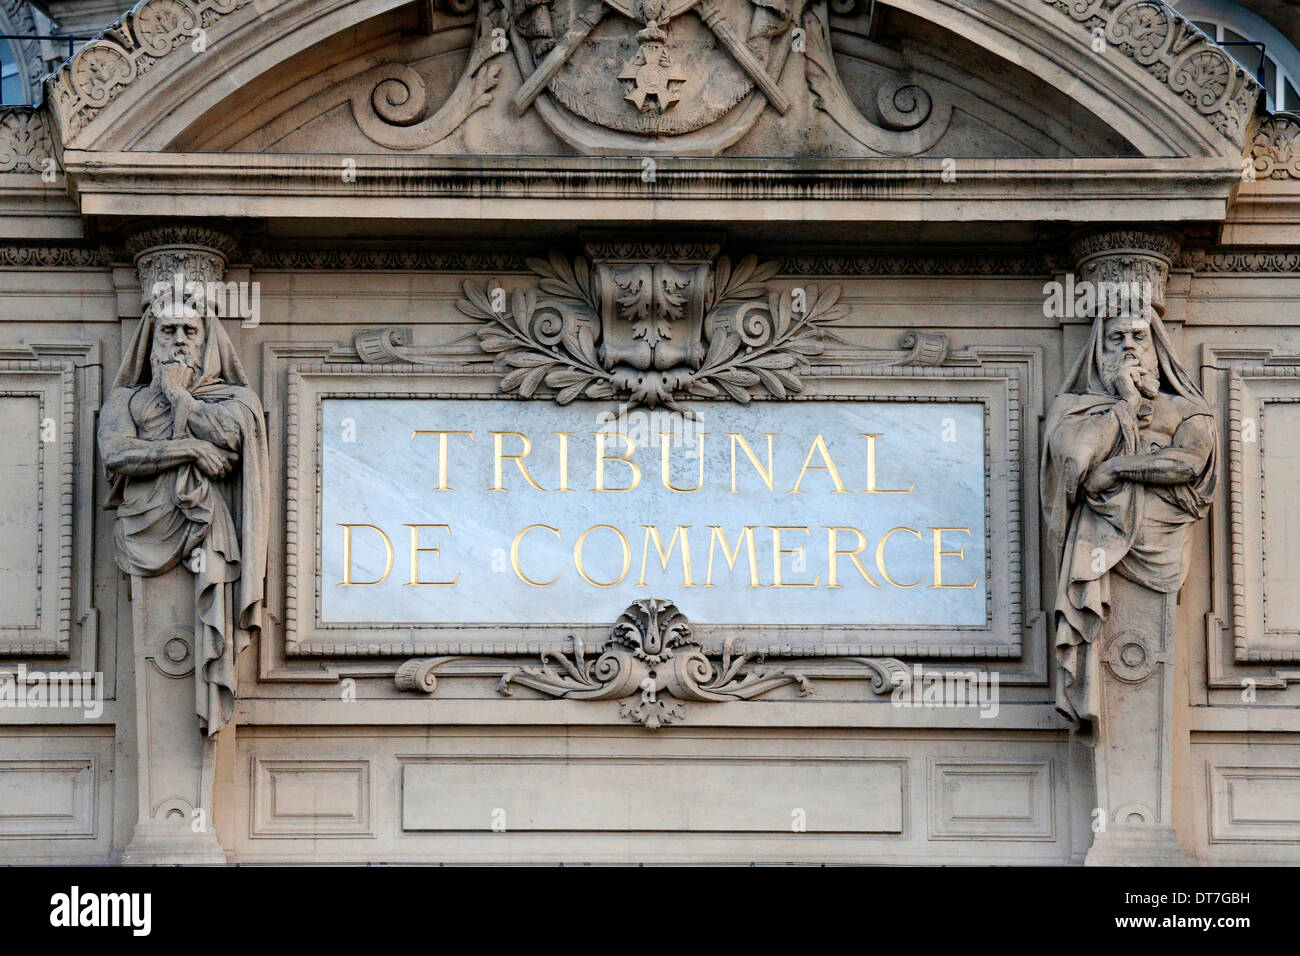 Commercial court. - Stock Image